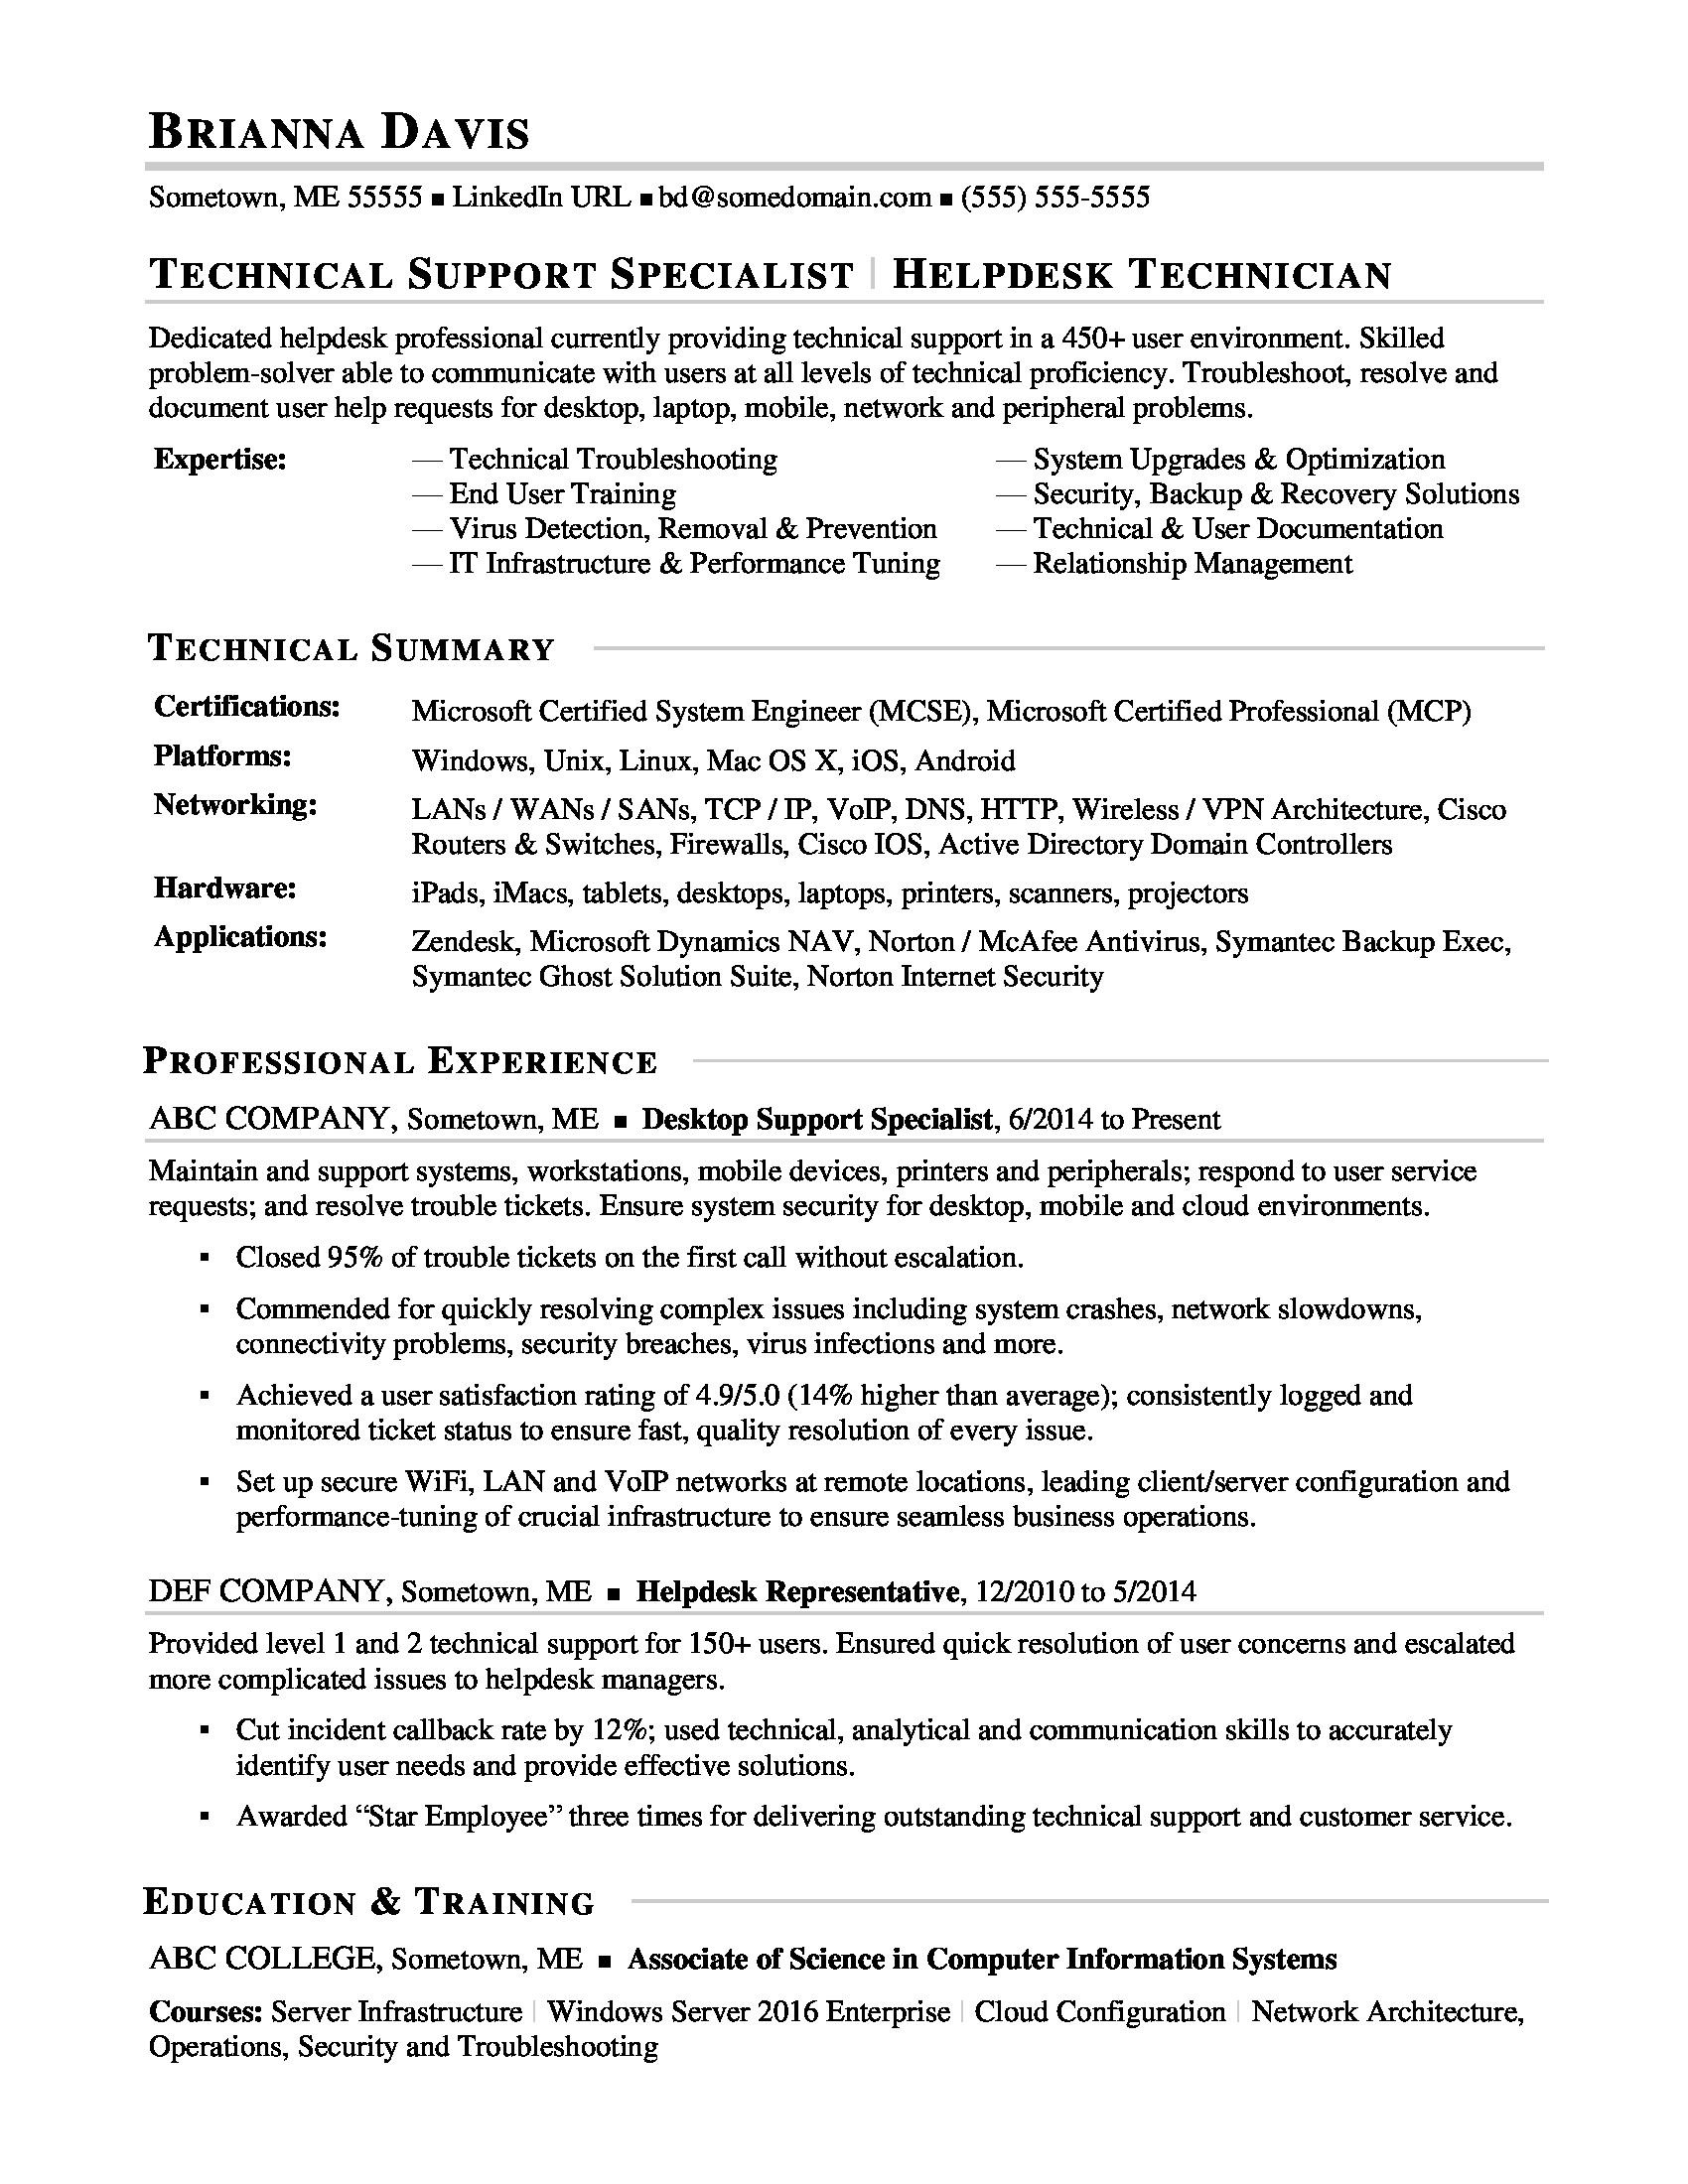 This sample resume for an experienced IT help desk professional ...